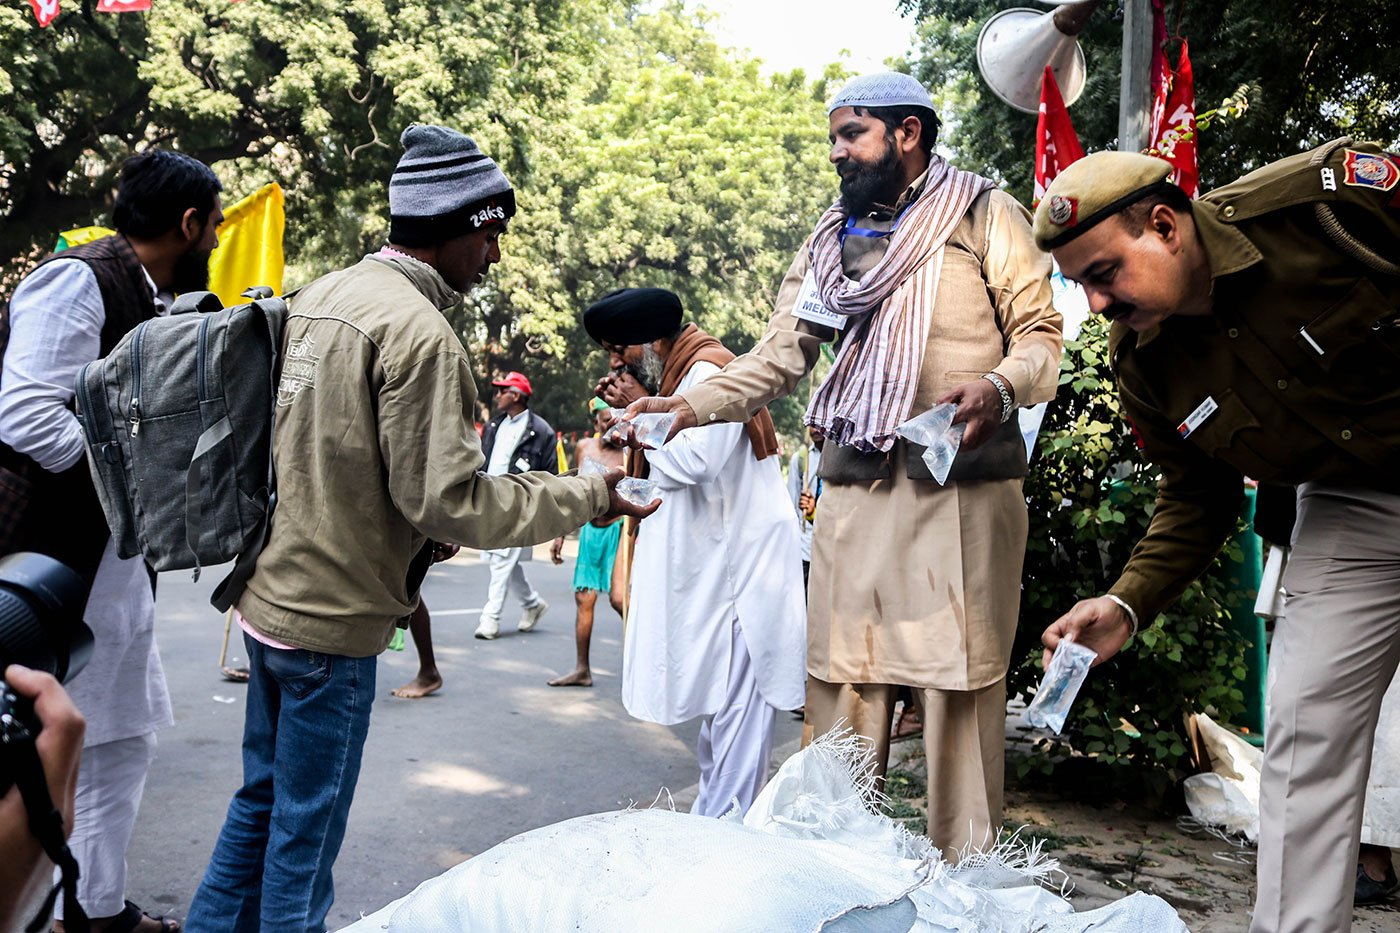 Volunteers distributing water to the farmers at Parliament Street